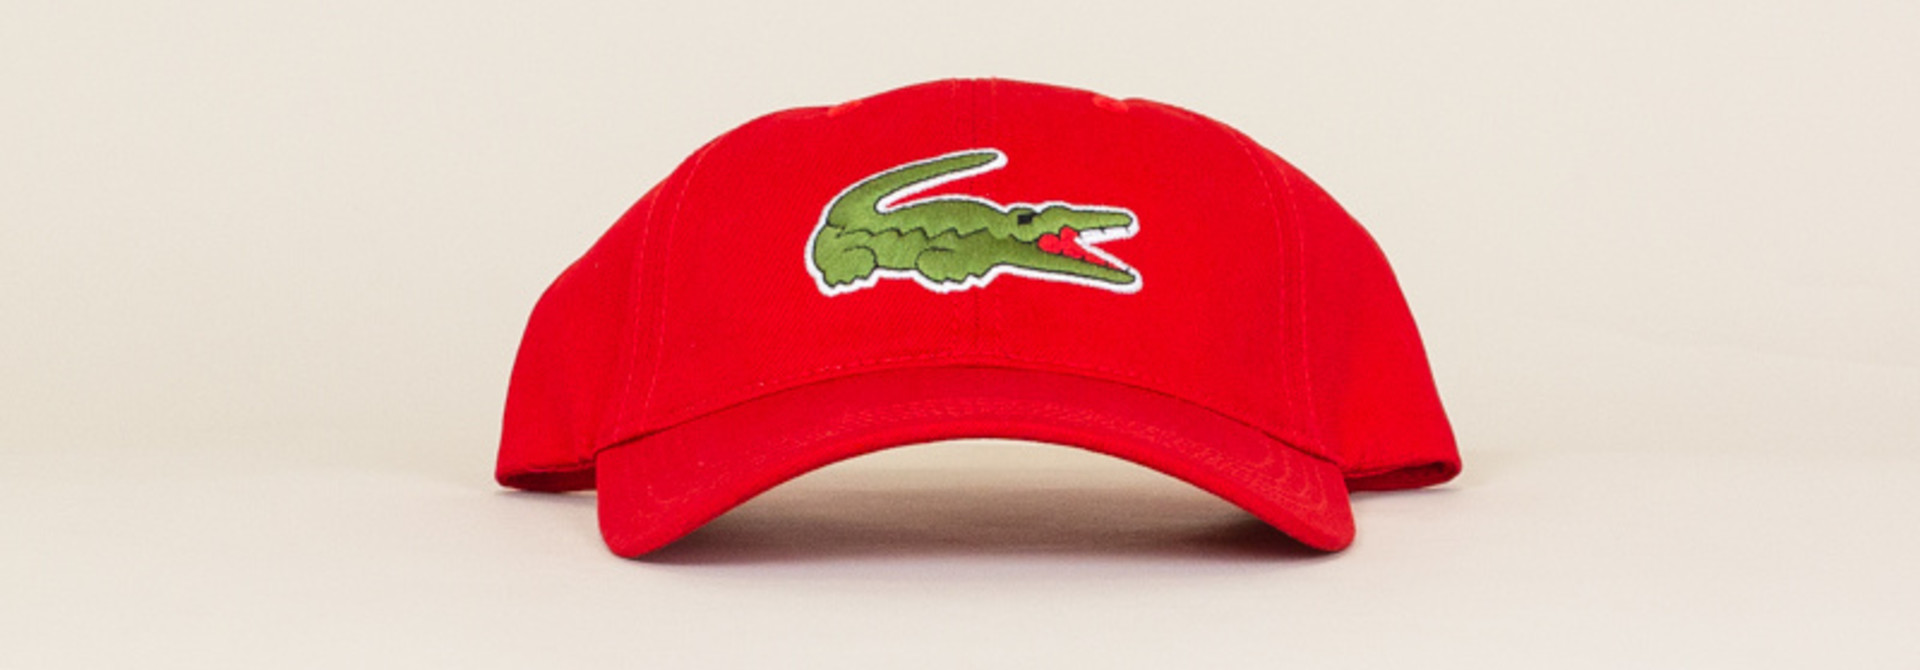 Lacoste Big Croc Cap - Red